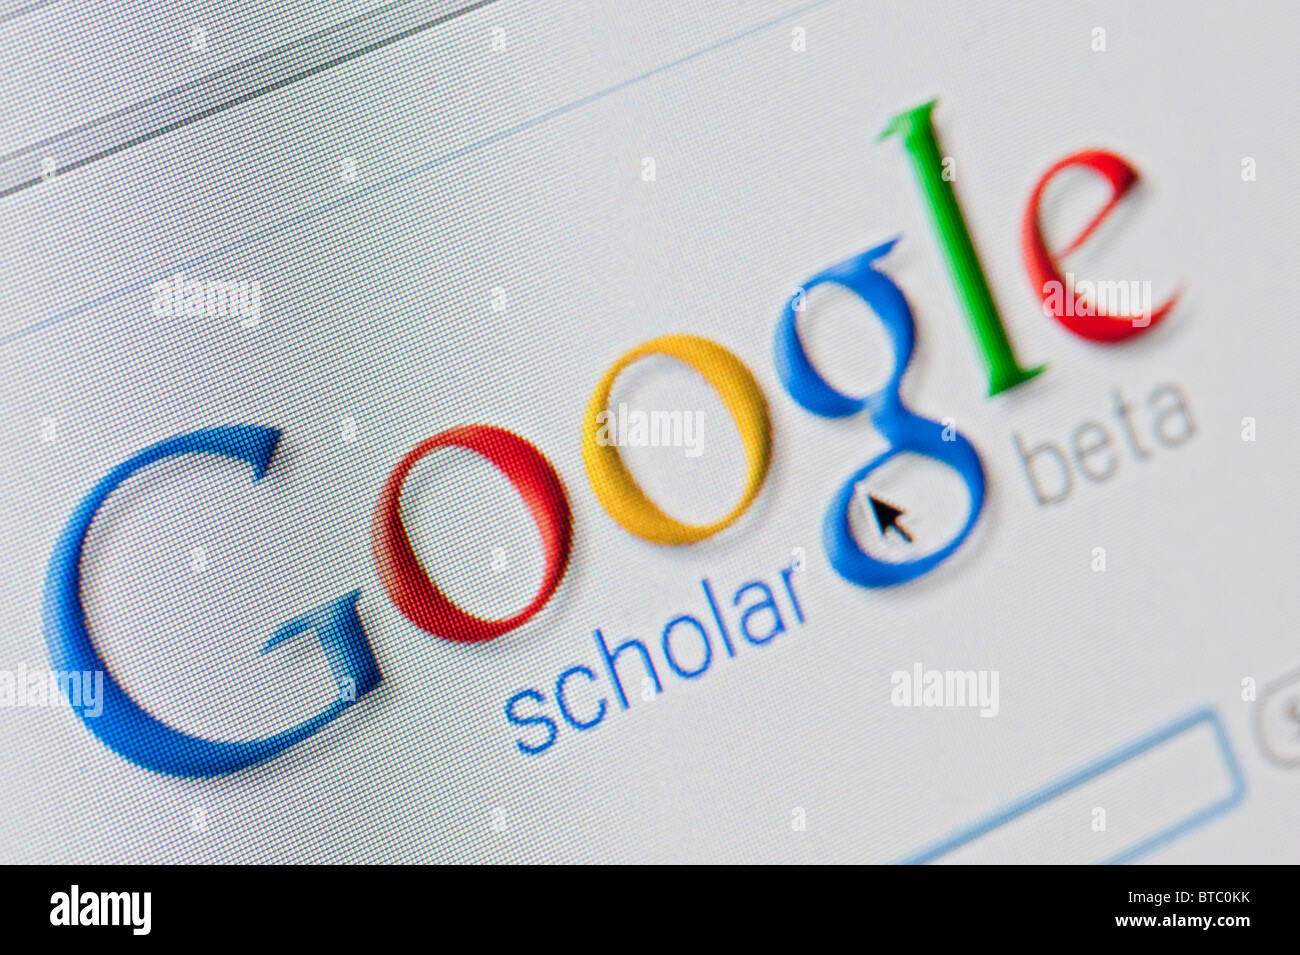 Screenshot from homepage of Google scholar search engine - Stock Image